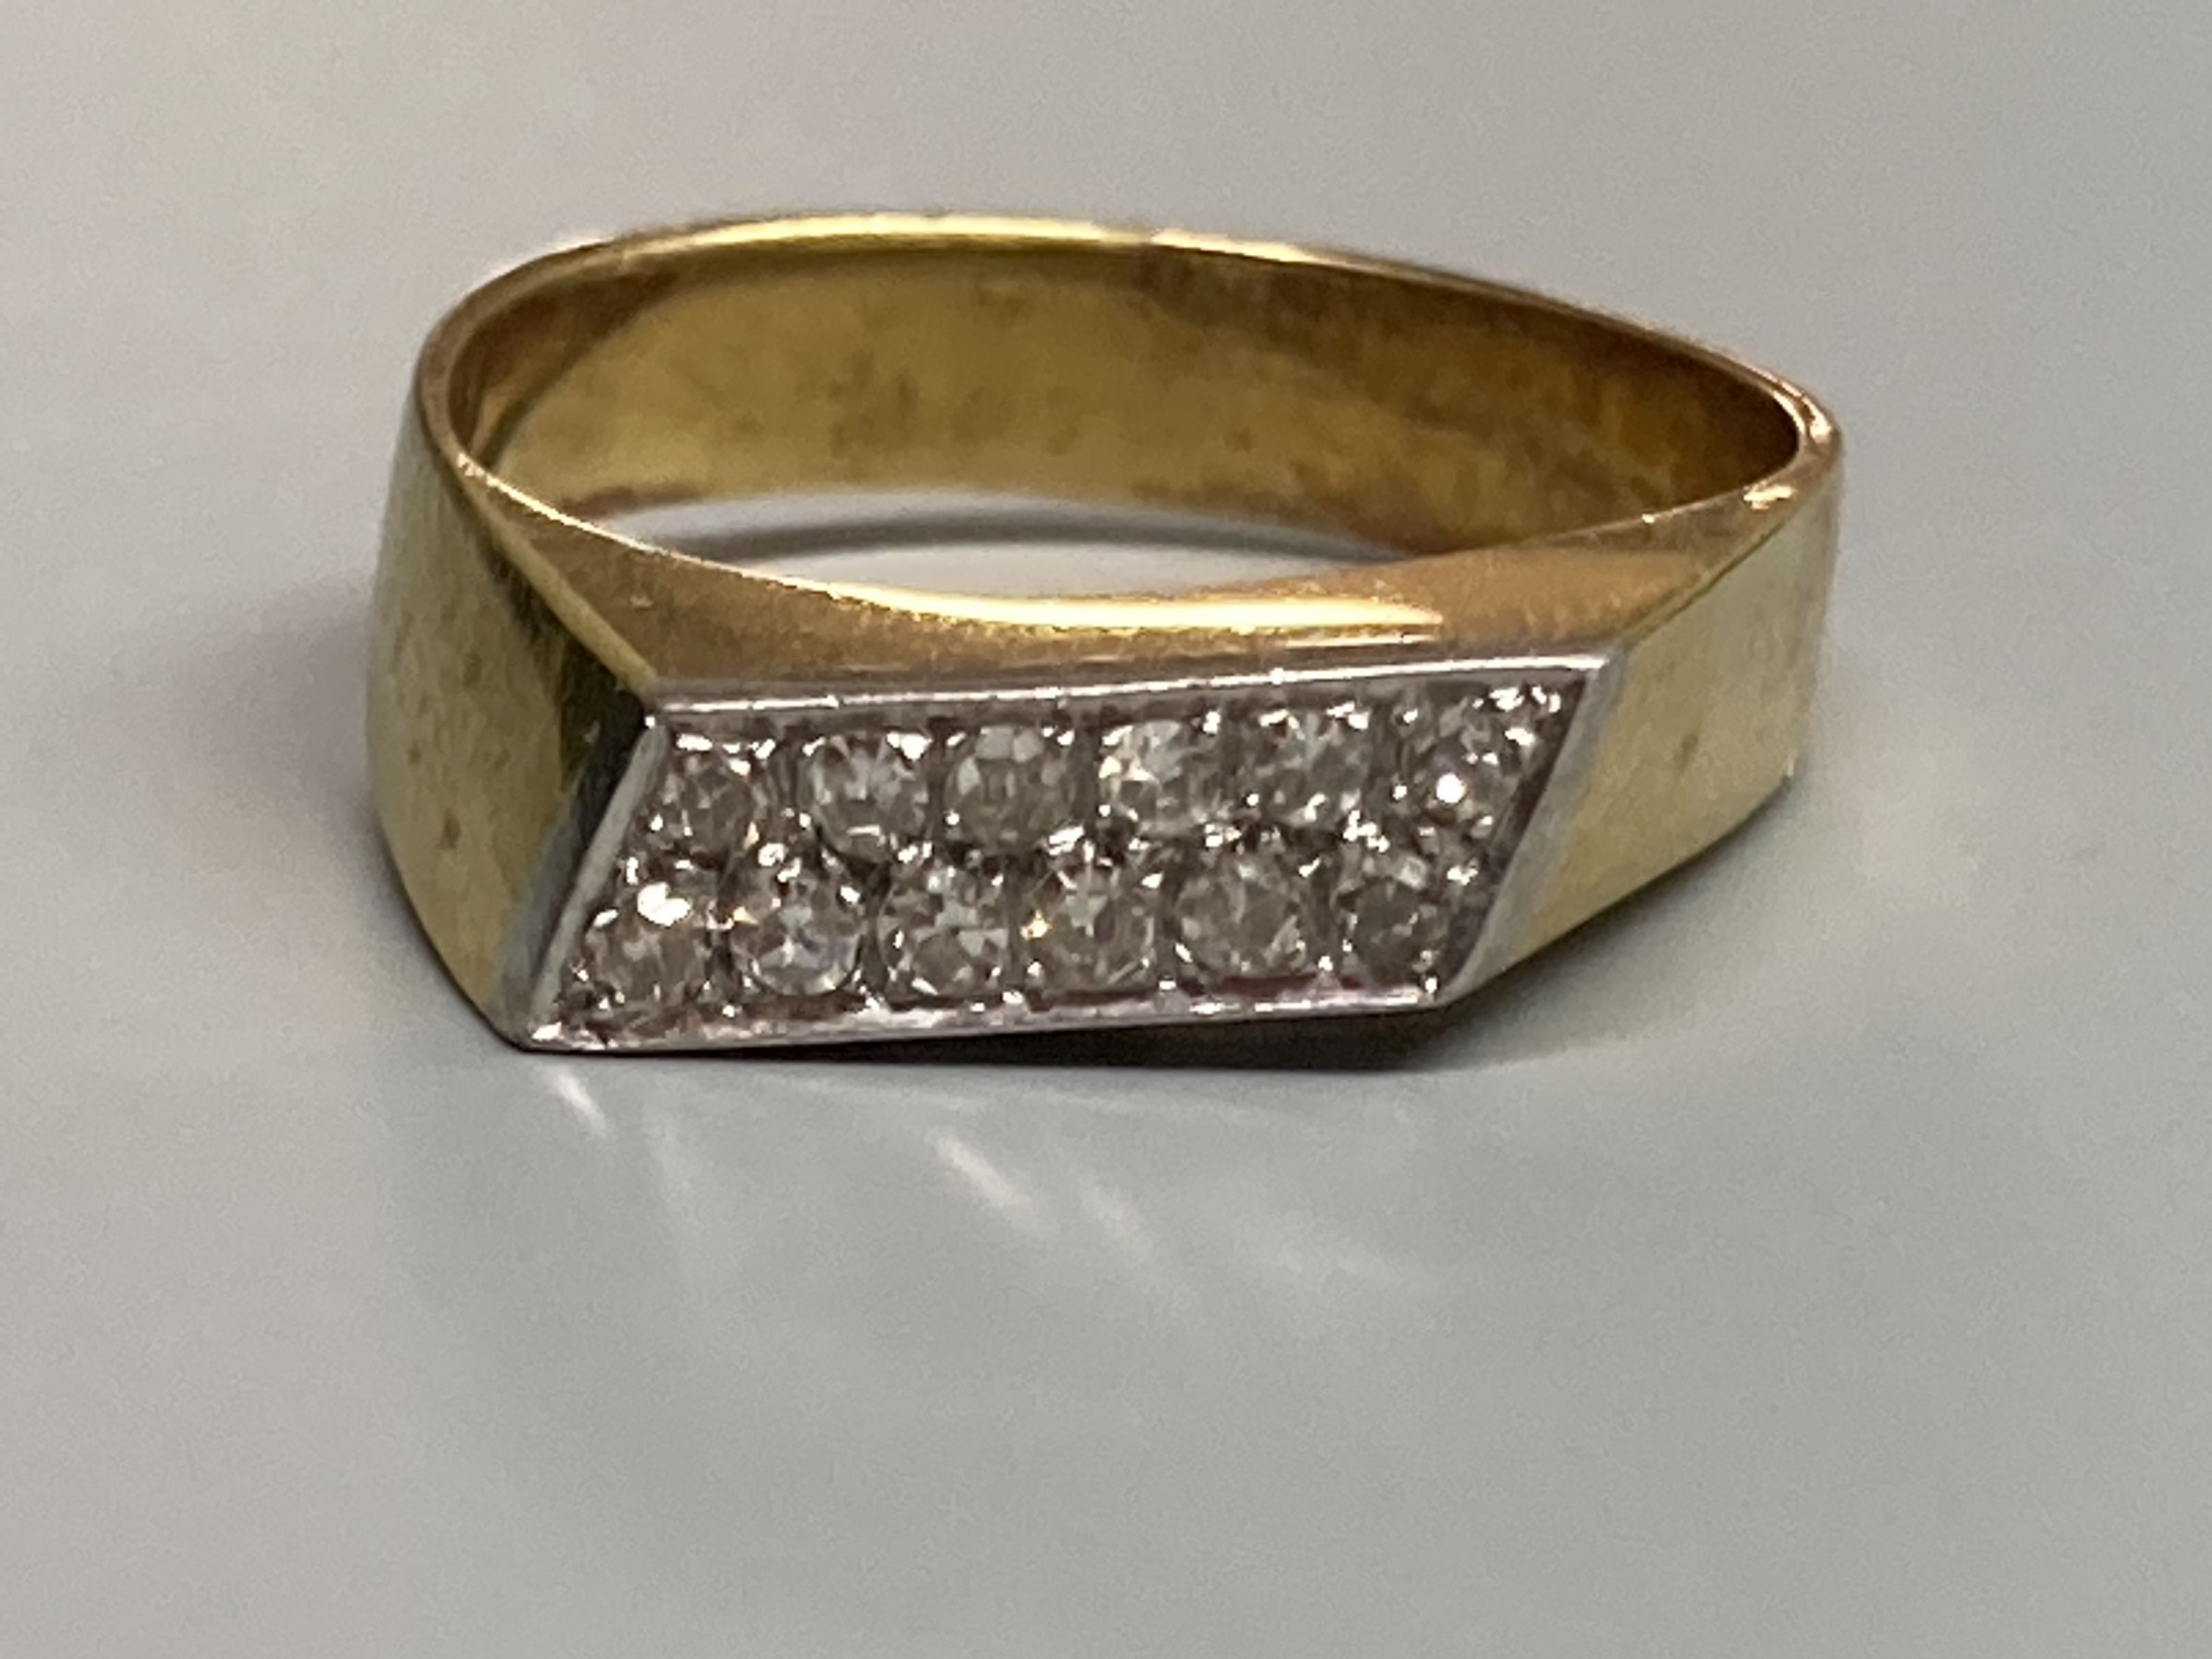 A modern 18k yellow metal and pave set two row diamond ring, size L/M, gross 4.8 grams. - Image 2 of 2